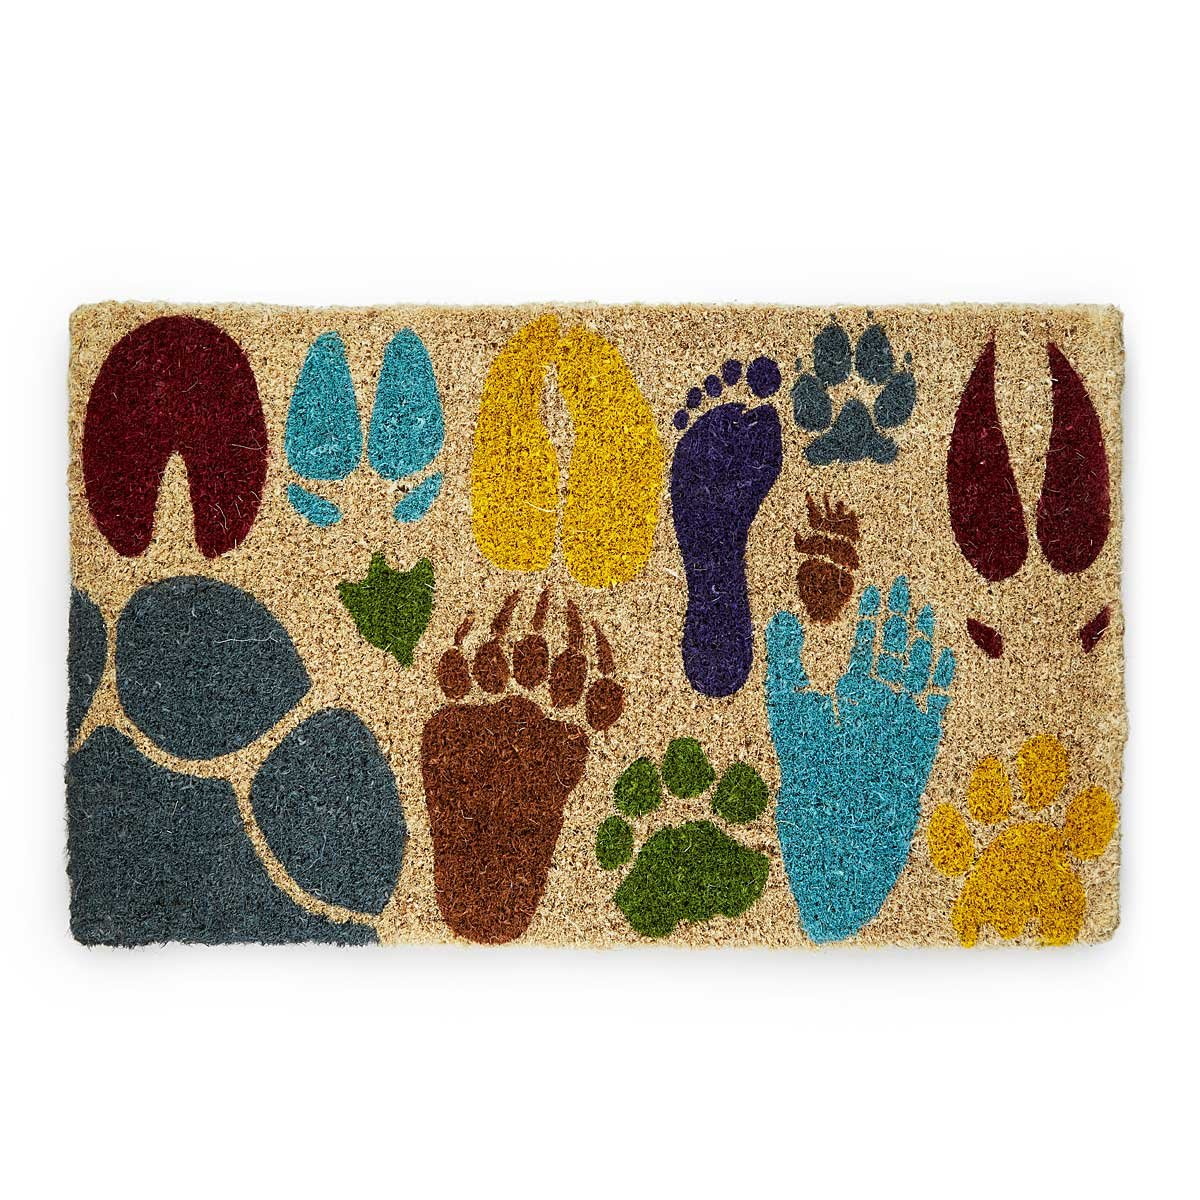 Array of Actual Sized Animal Tracks Doormat | Handmade Playful ...